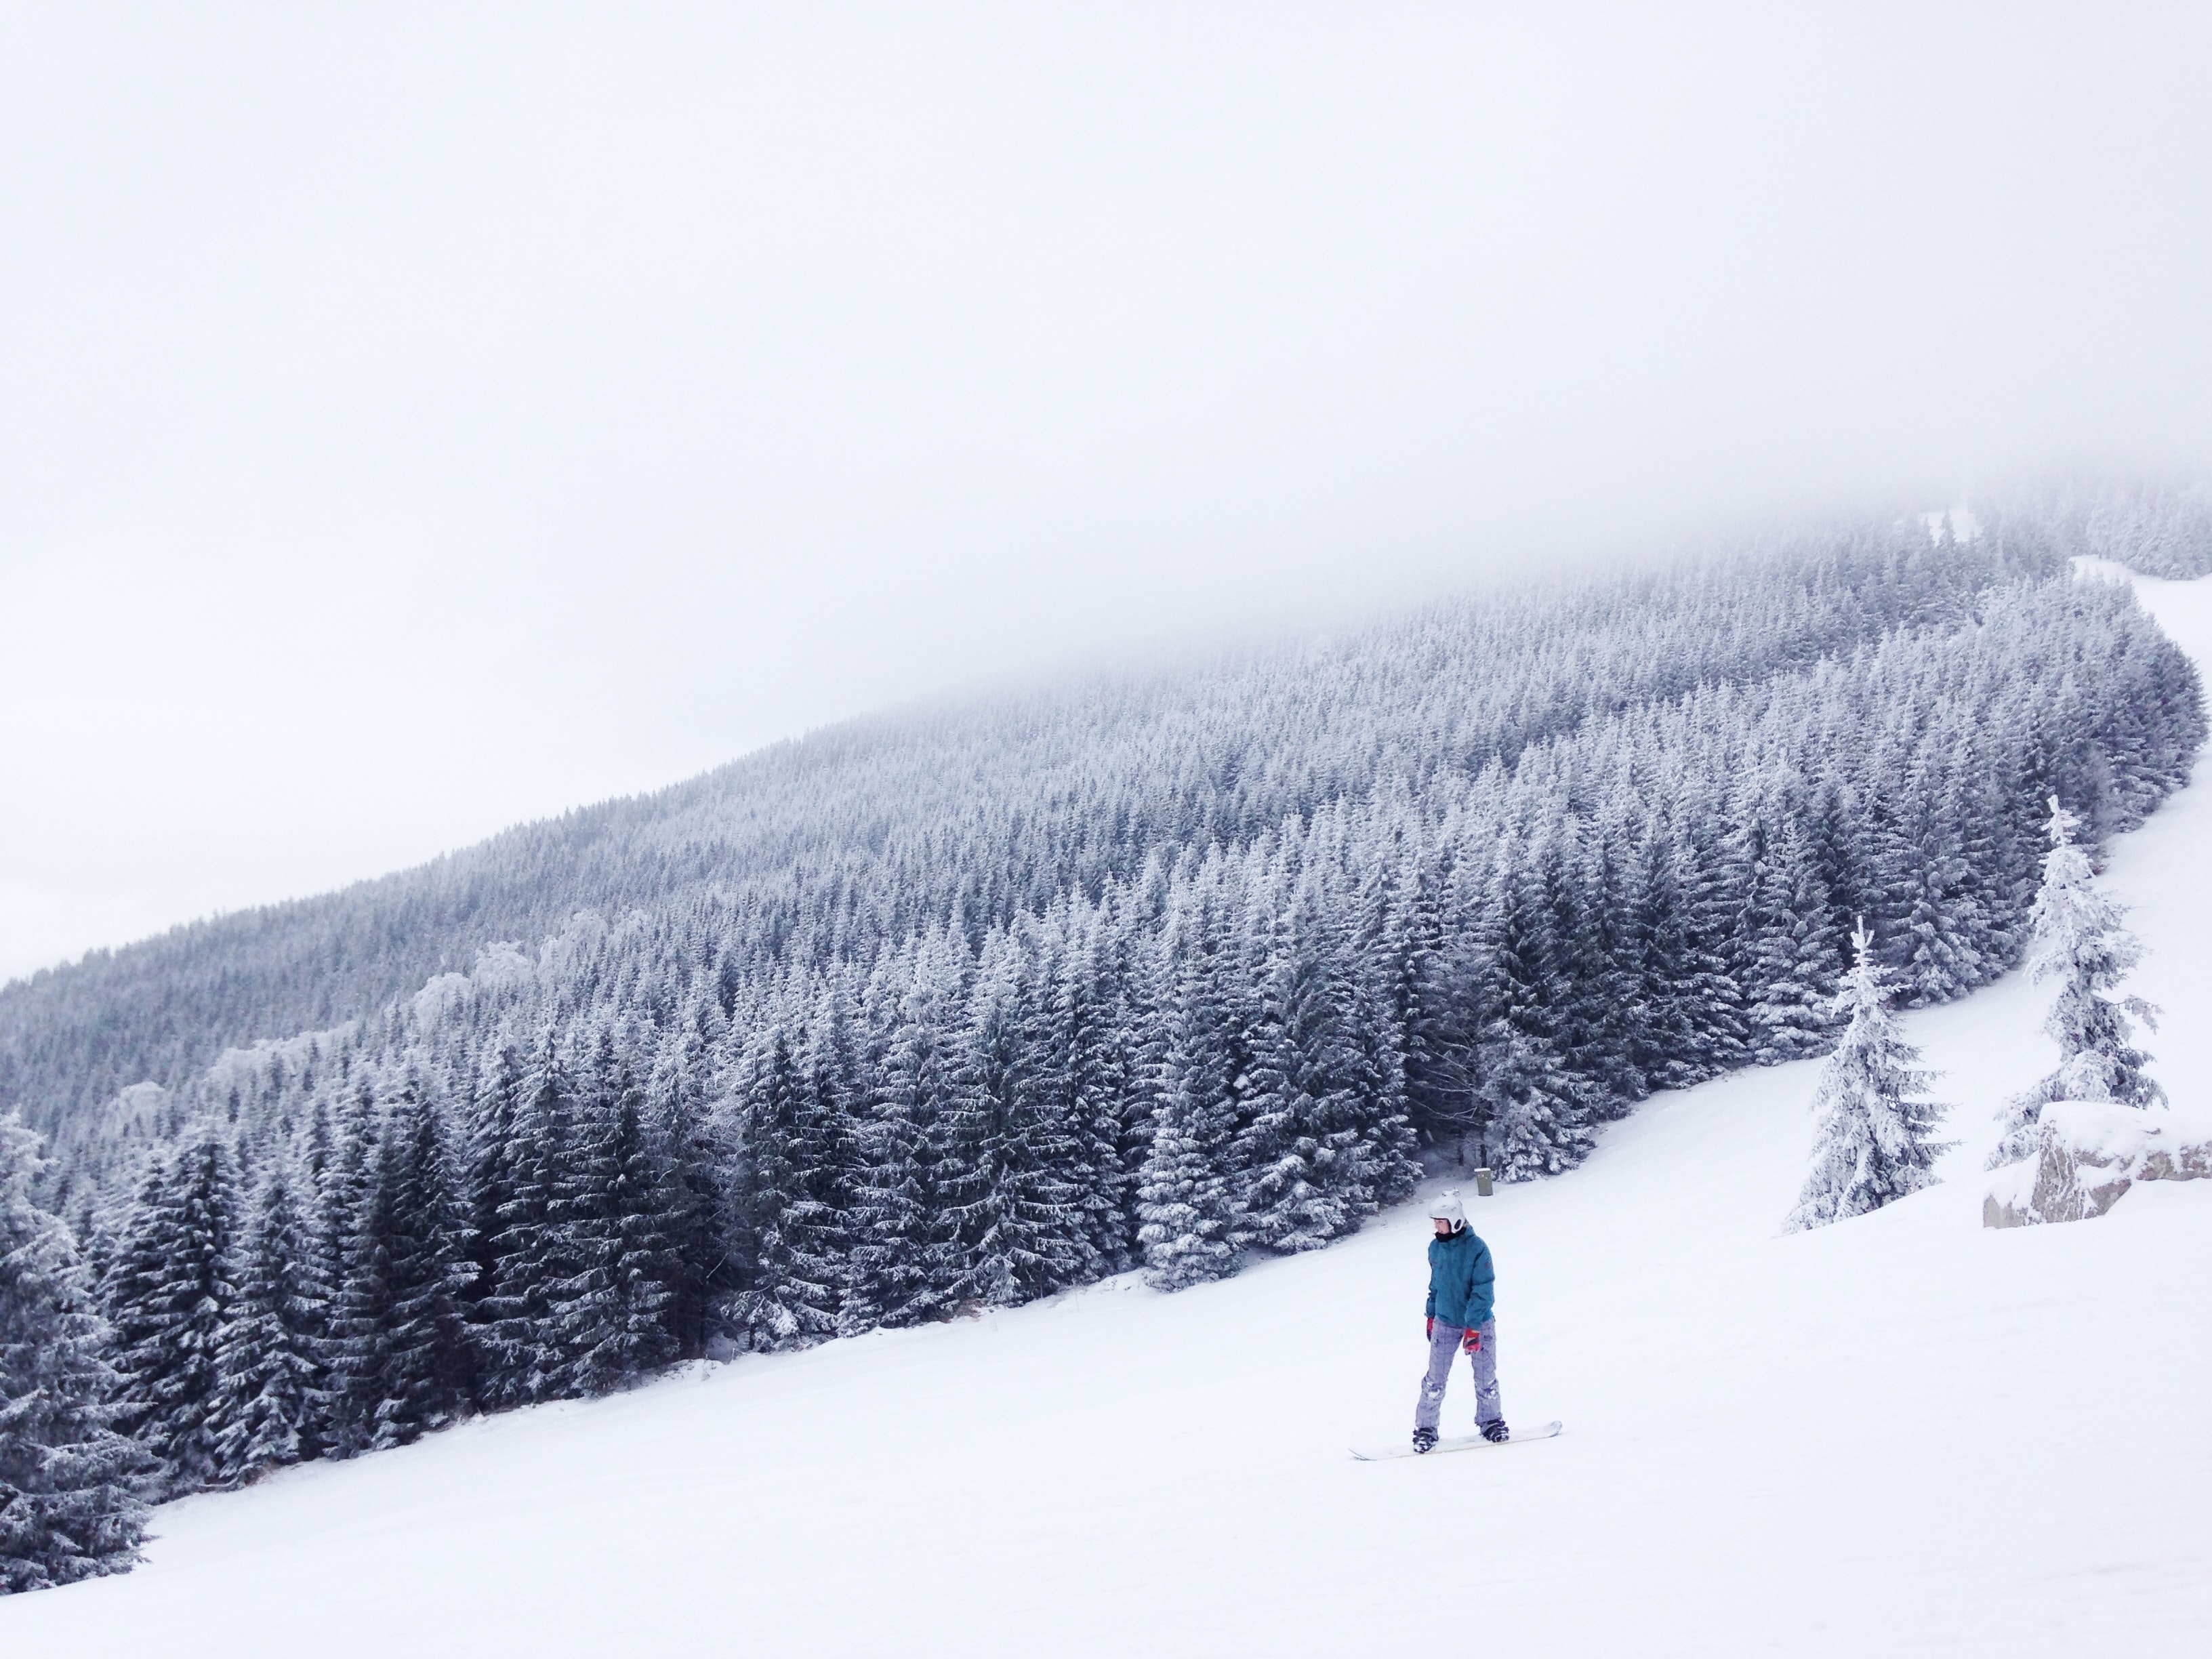 person snowboarding surrounded by trees